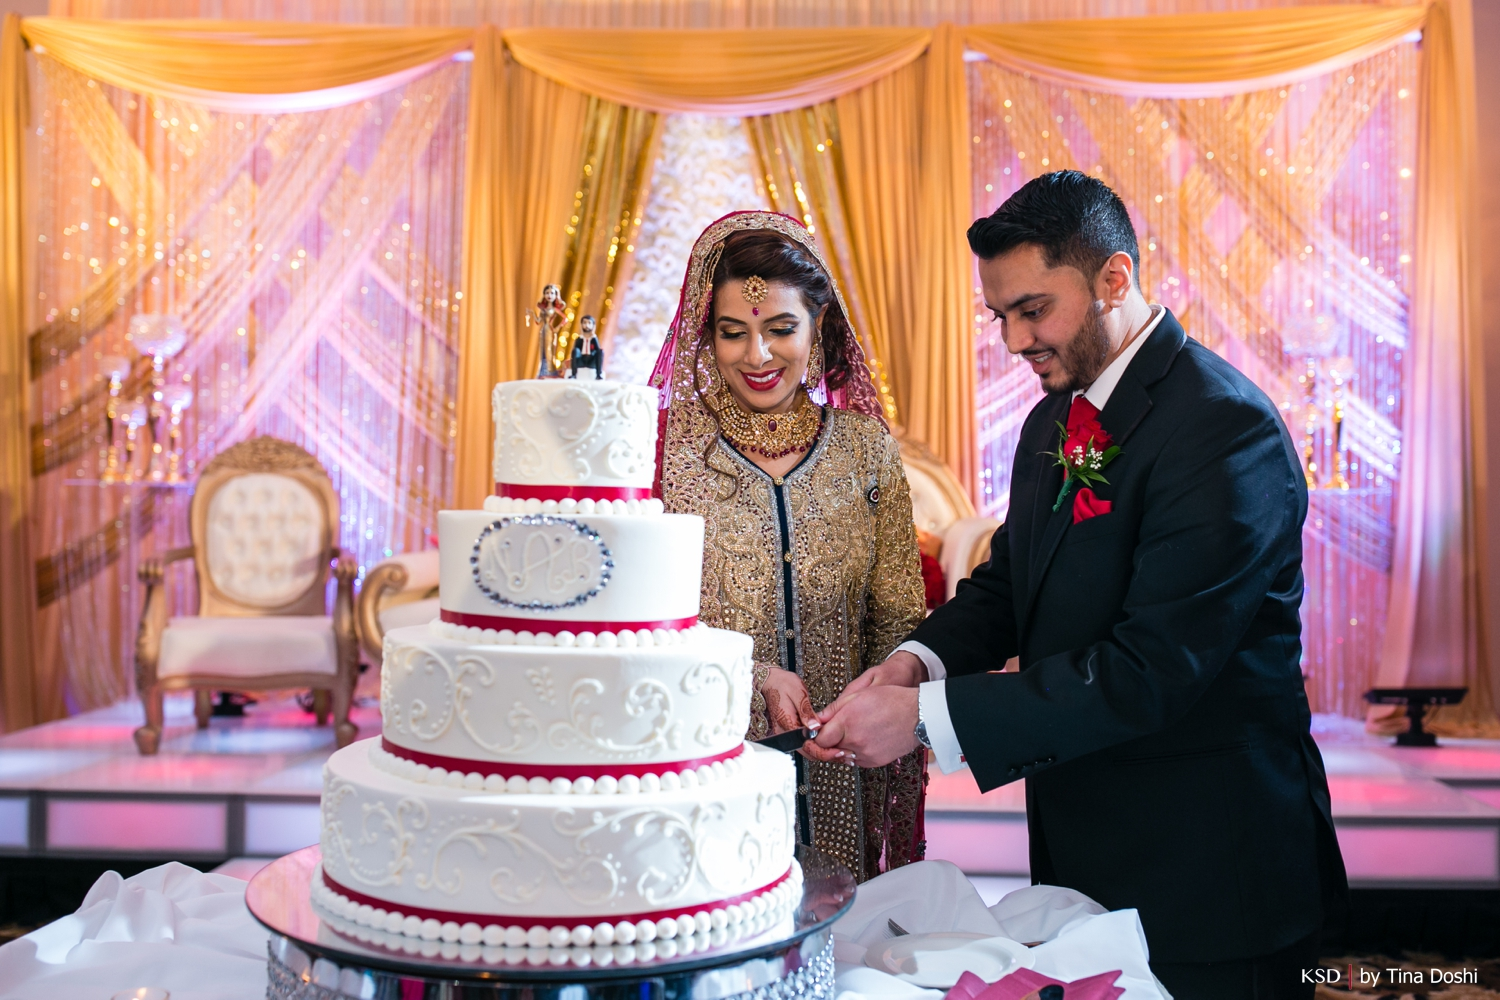 nj_south_asian_wedding_0113